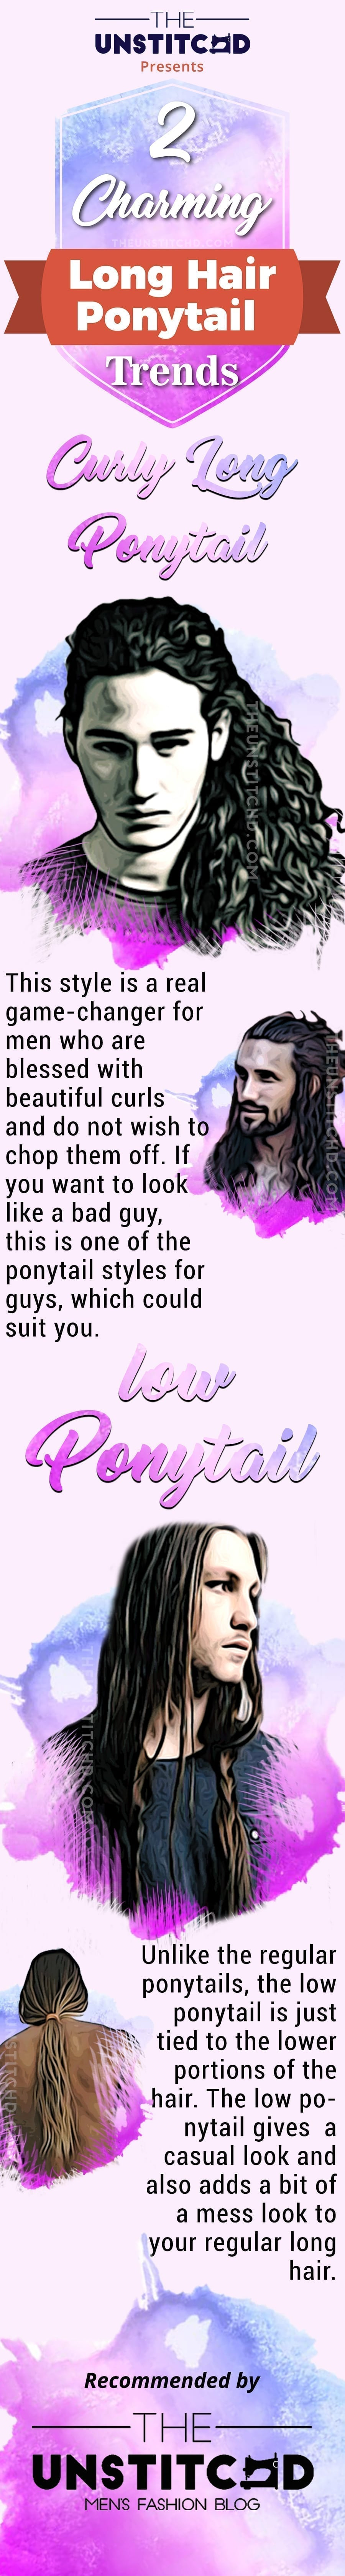 long-hair-ponytail-hairstyle-info